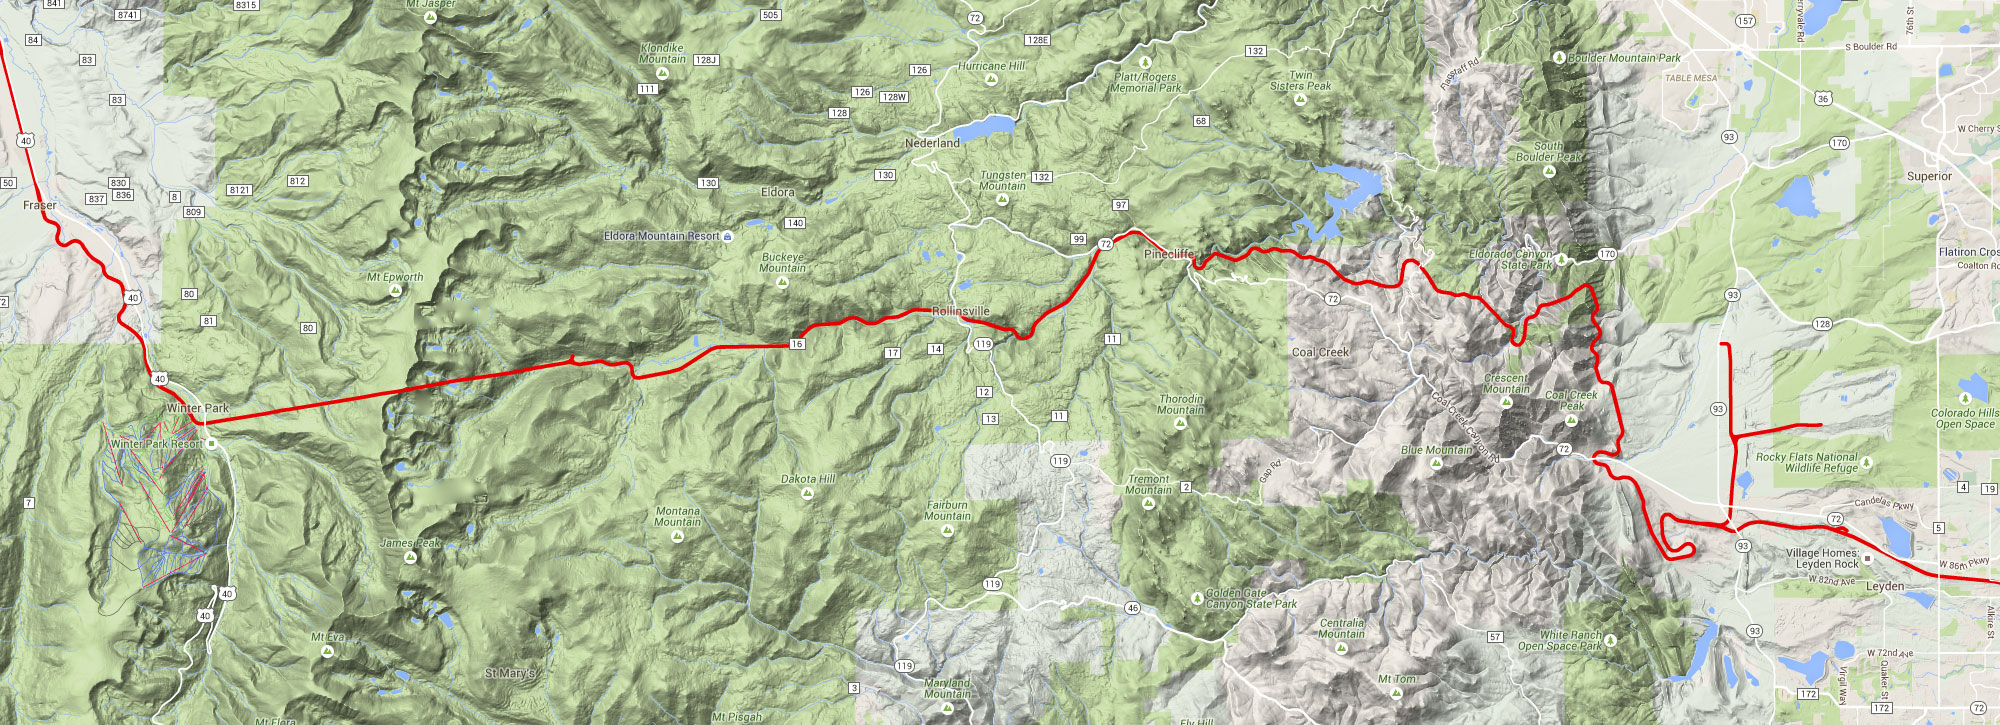 Moffat Route Terrain Map - West Denver Metro to Winter Park